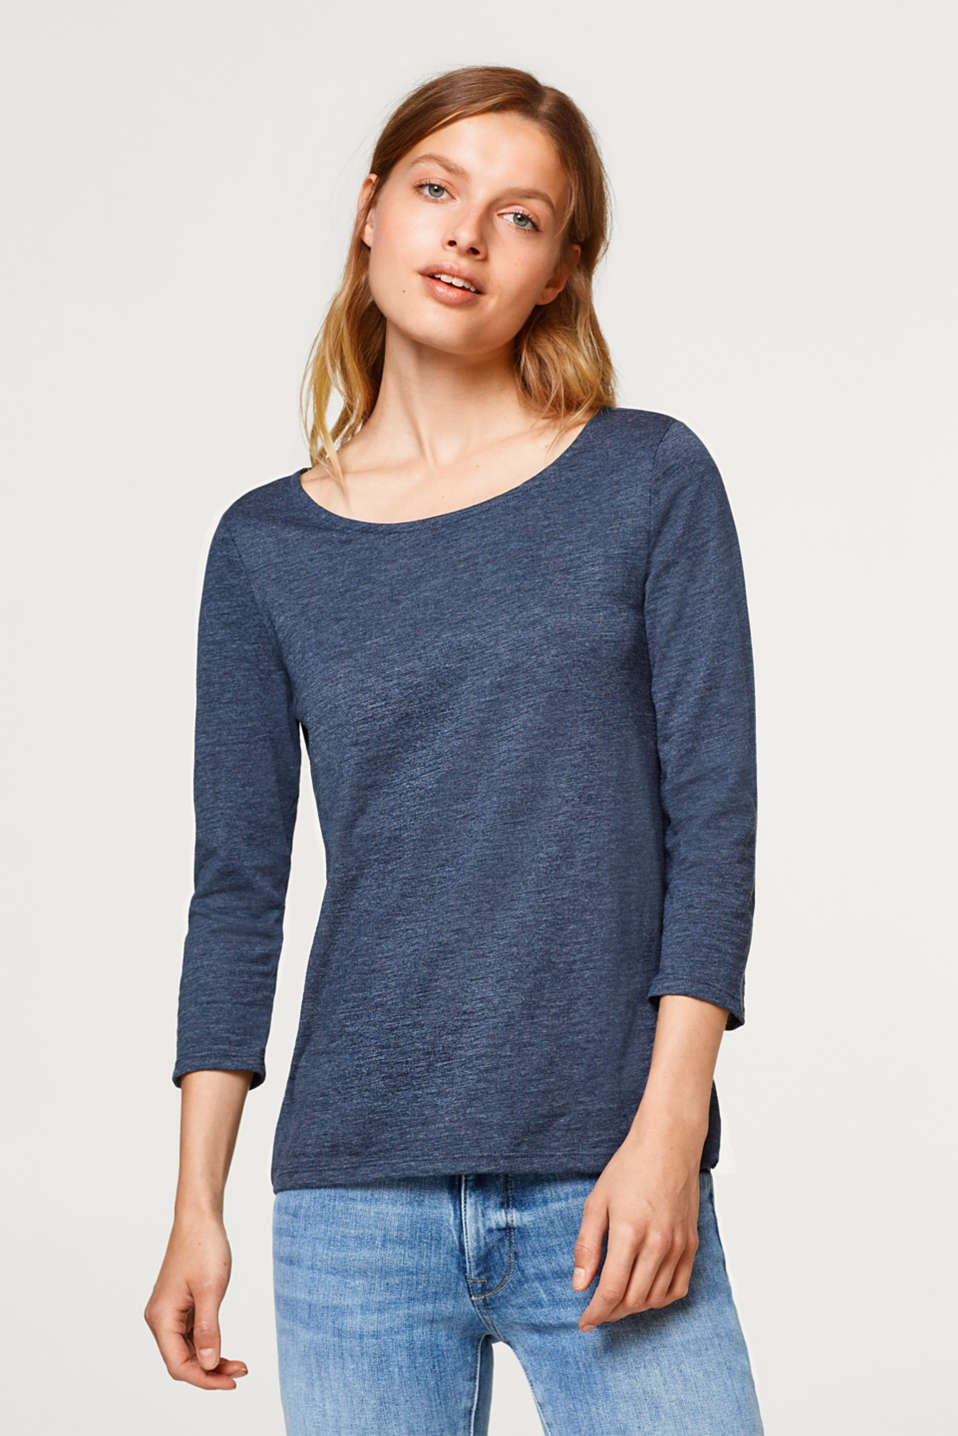 Esprit - Slub jersey long sleeve top with organic cotton